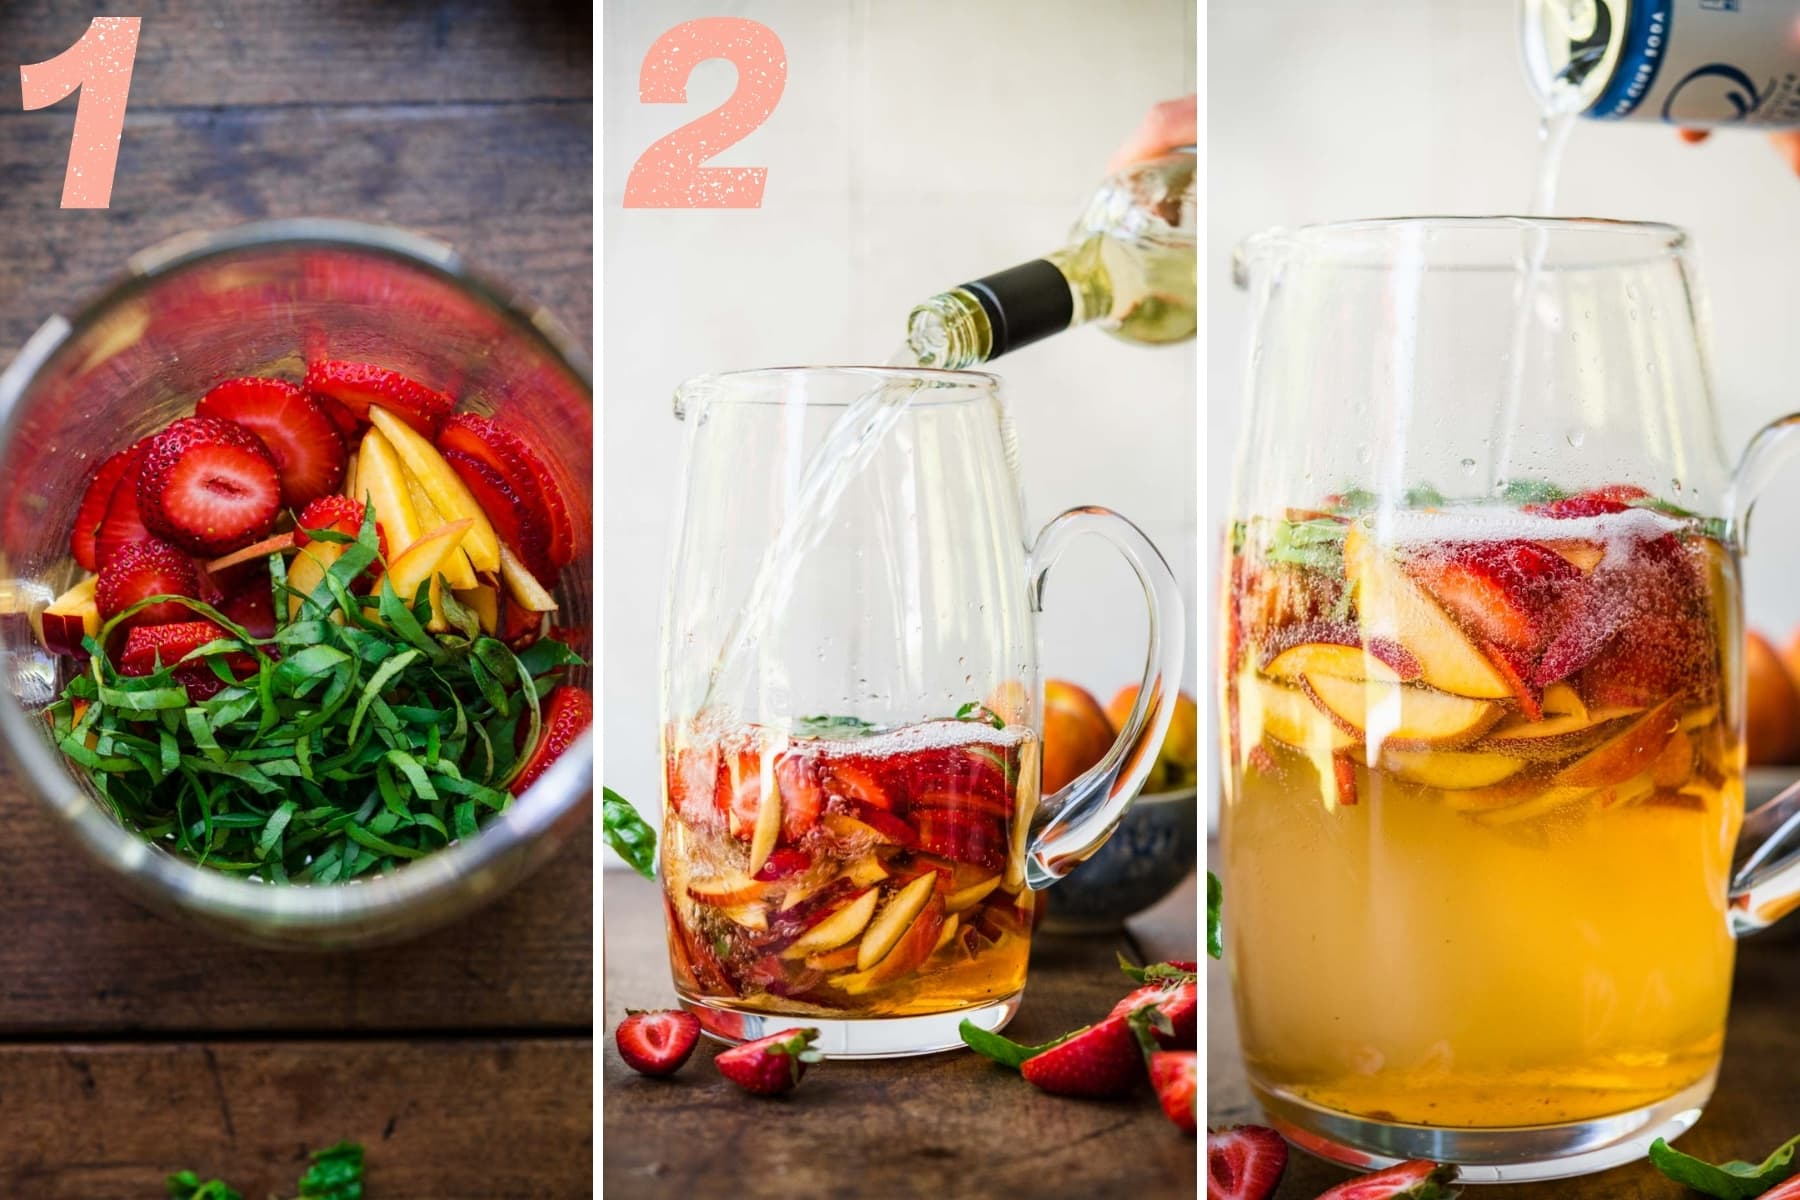 pouring wine and club soda into pitcher with strawberries, peaches and basil.